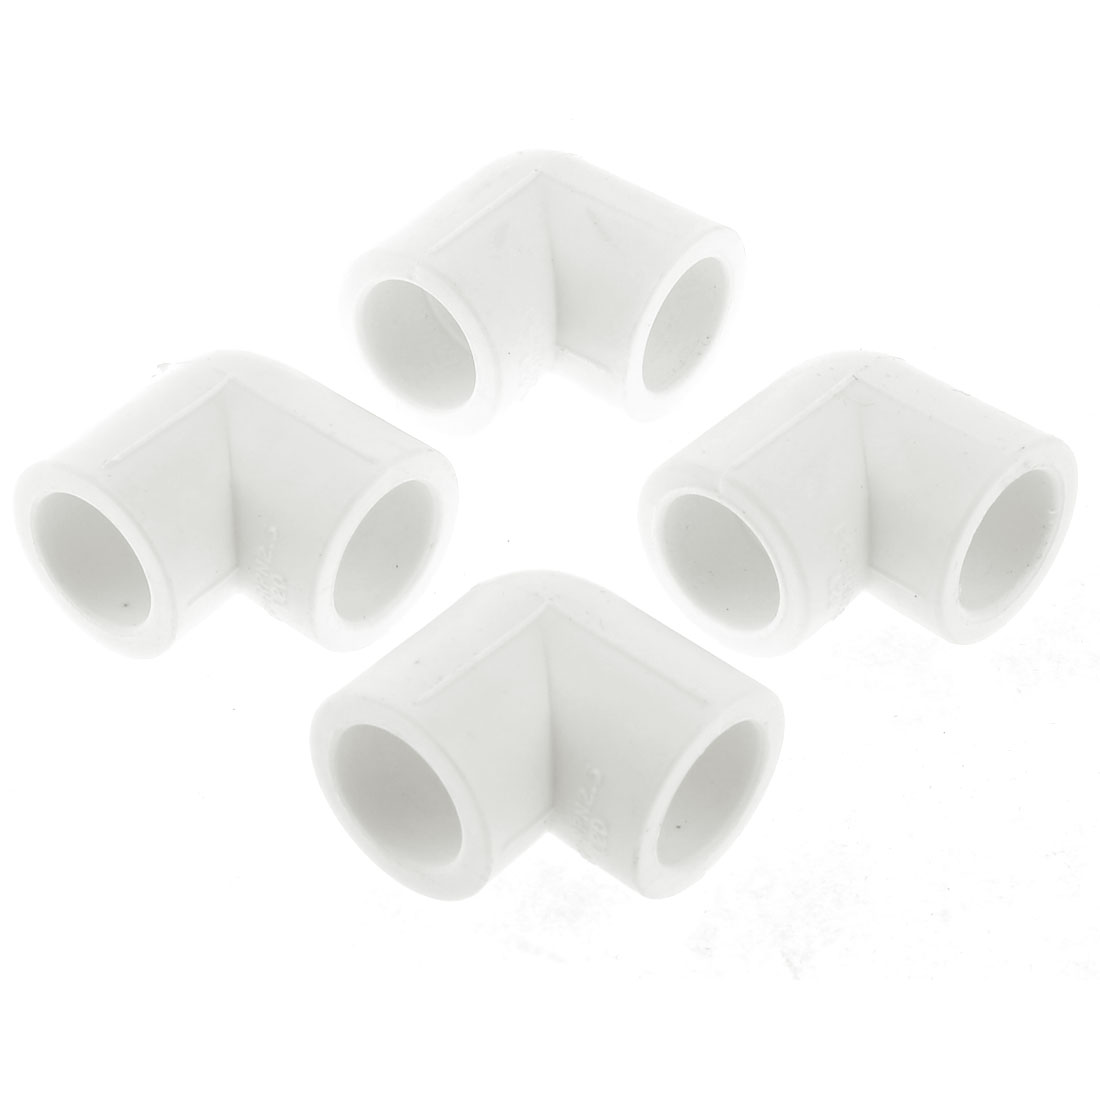 White-Elbow-Right-Angle-PVC-U-Pipe-Connectors-Adapter-Fitting-4-Pcs